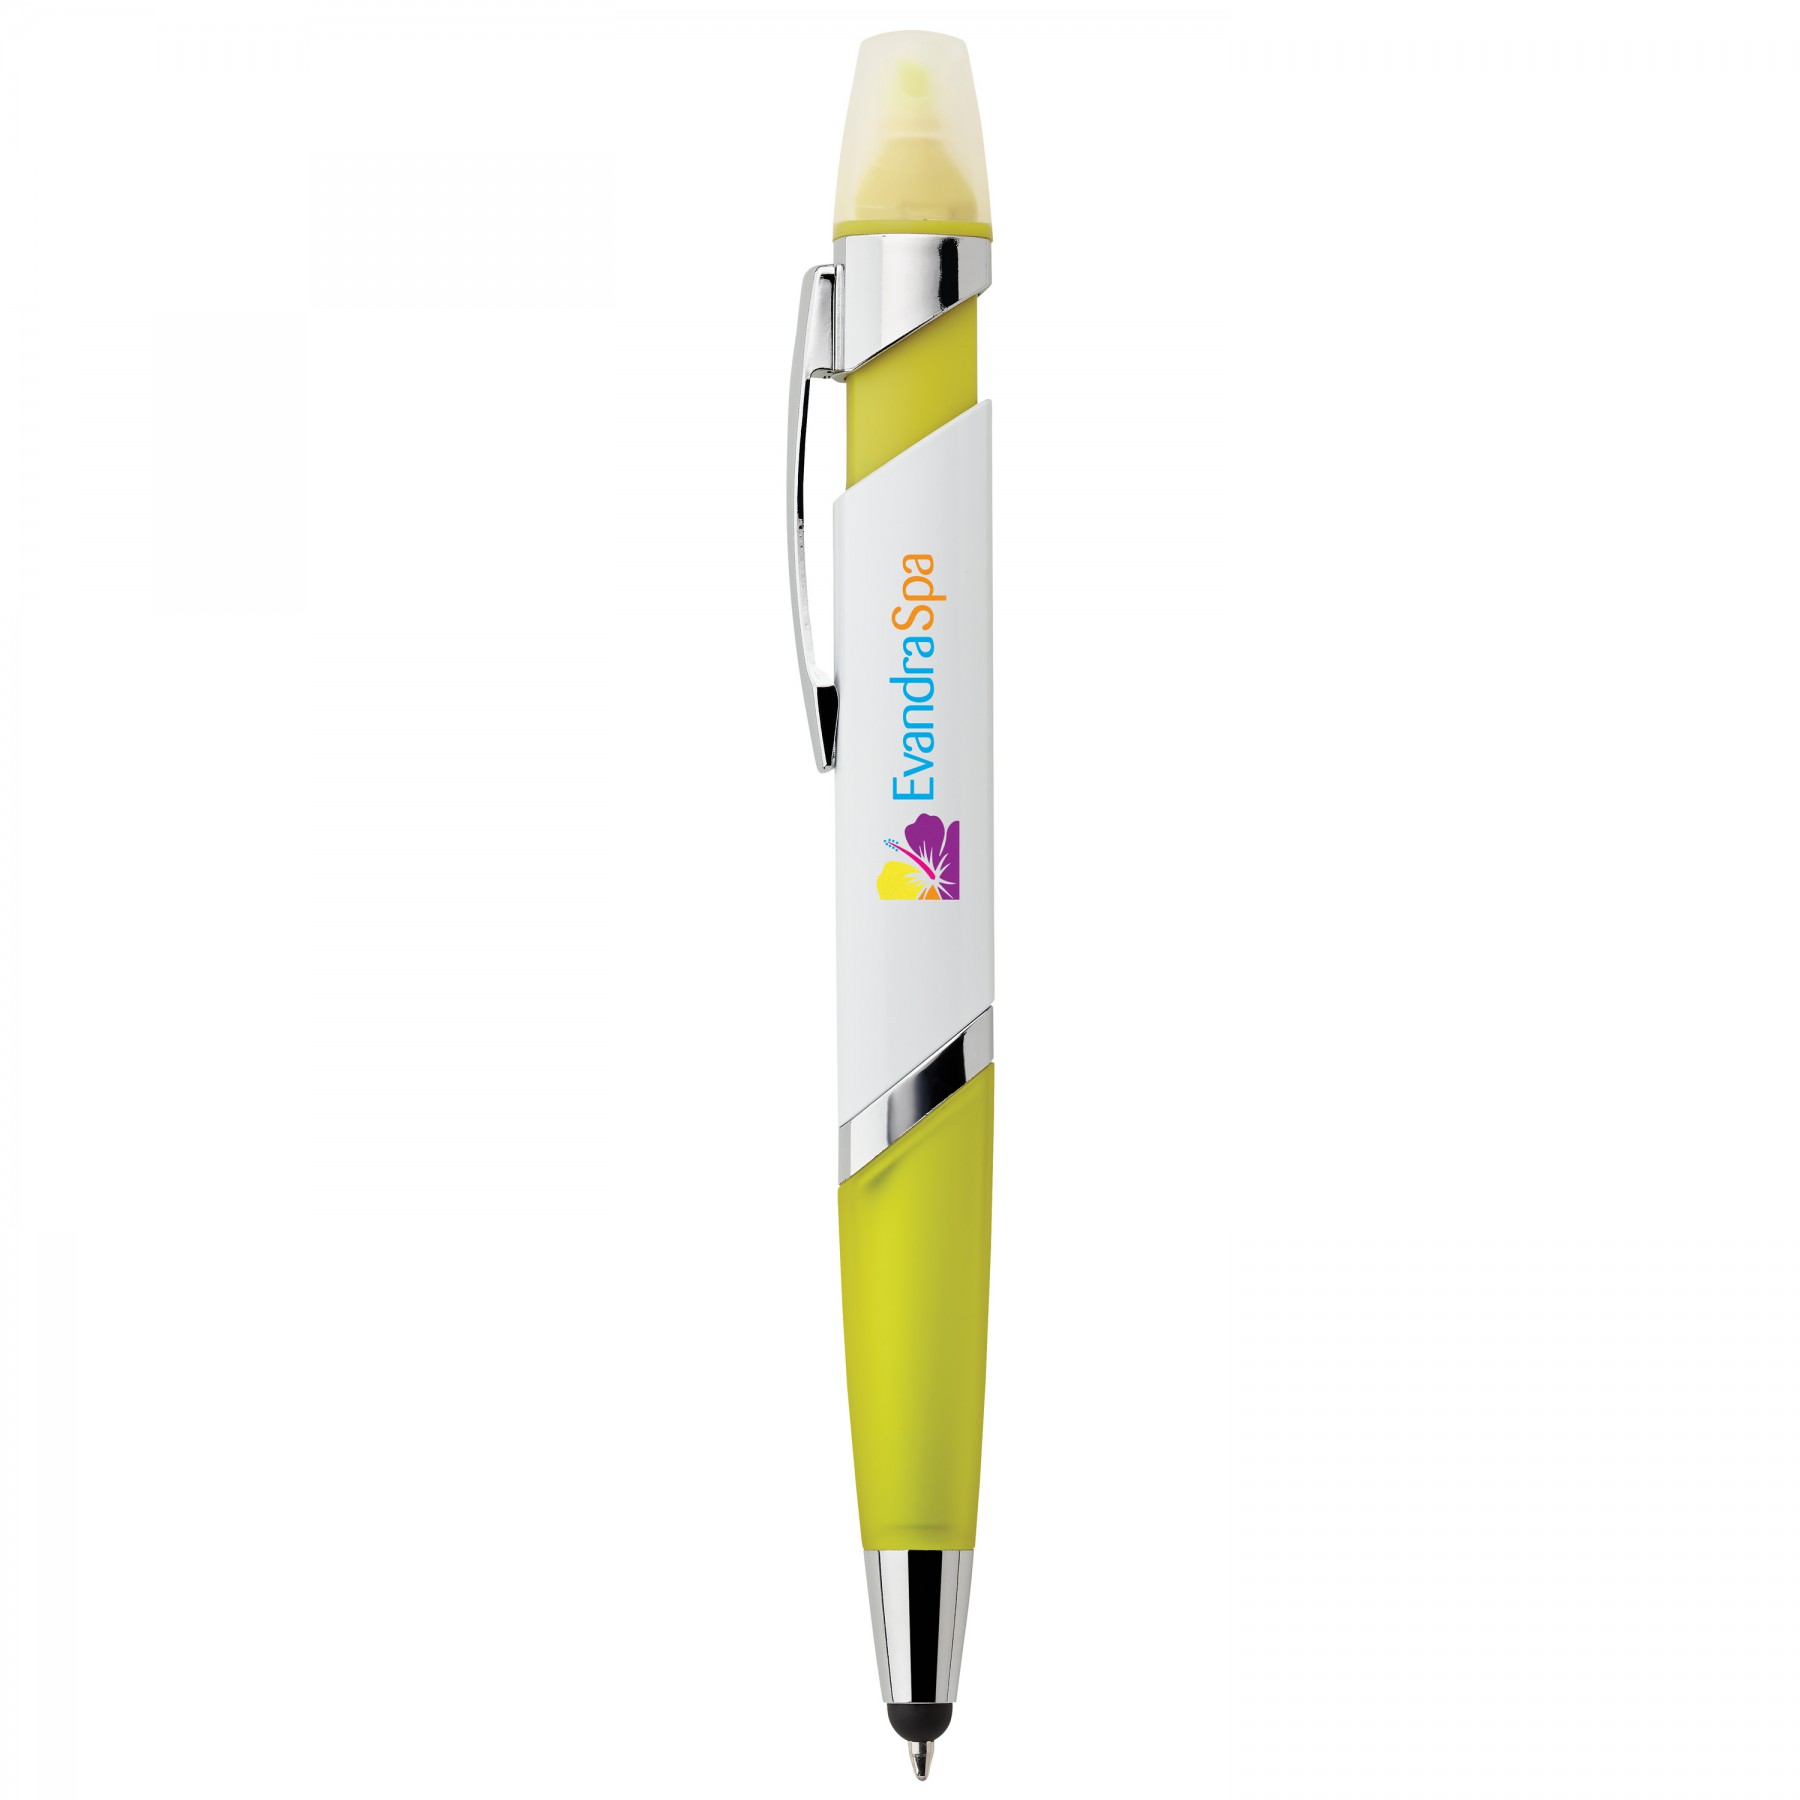 Cynthia Highlighter 3-In-1 Ballpoint Pen, I149, Full Colour Imprint